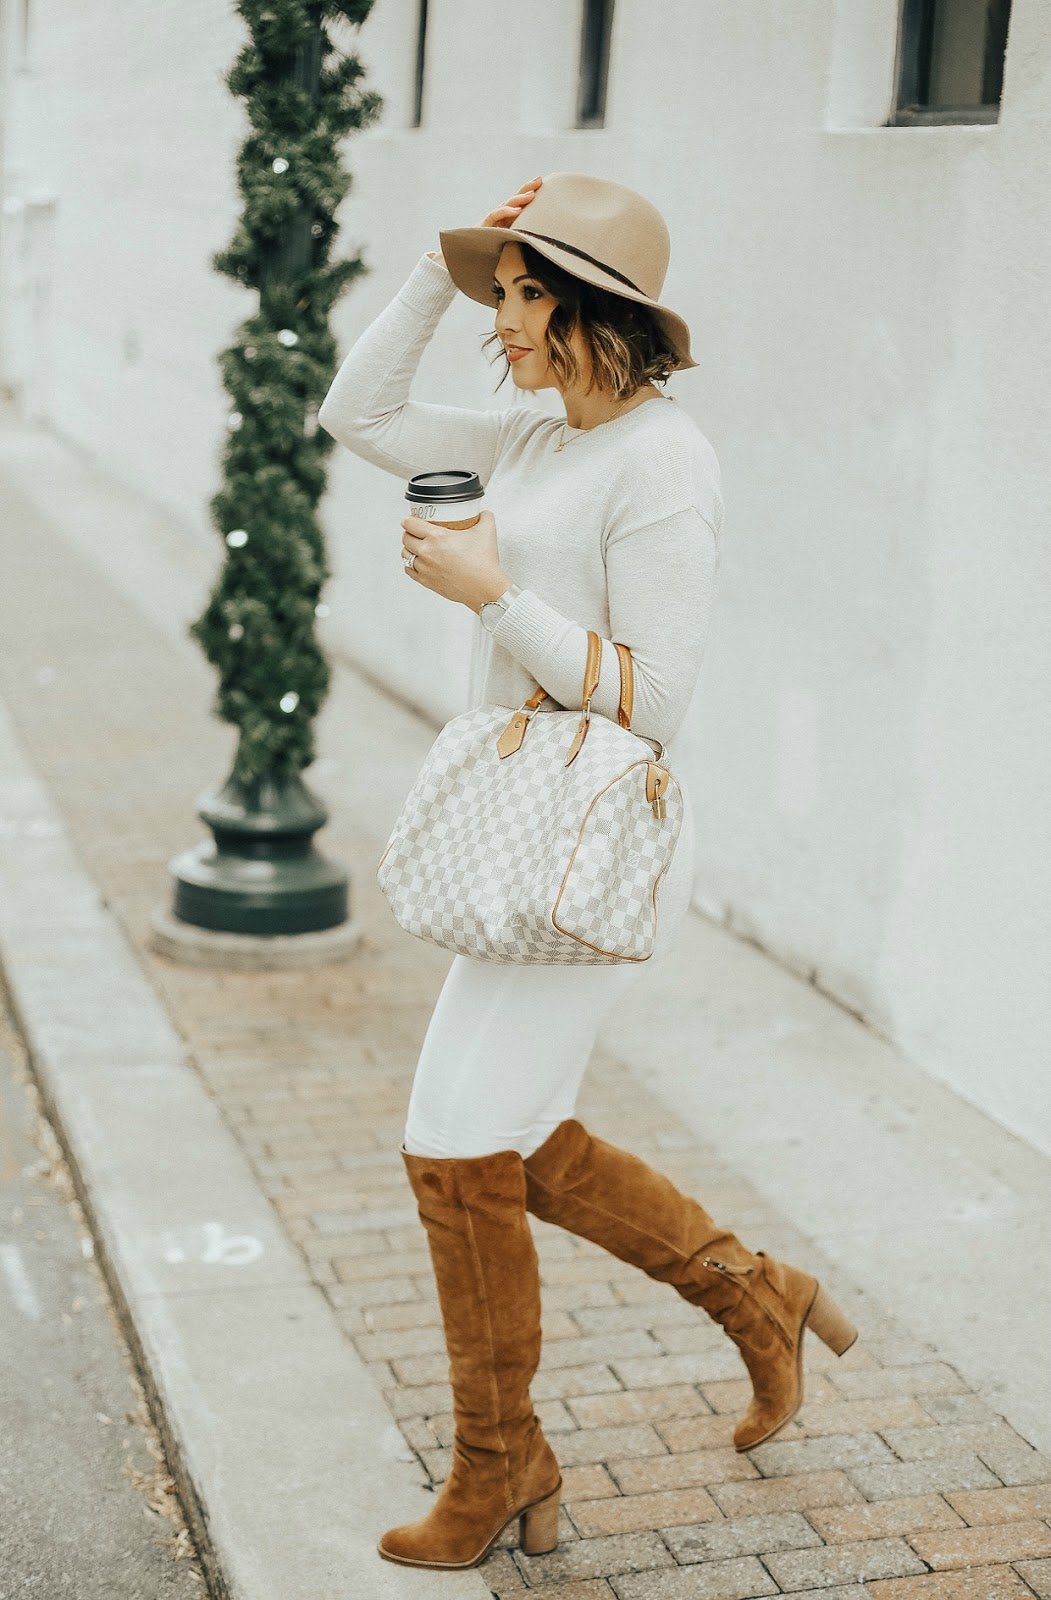 louis vuitton damier azur, life and messy hair, louis vuitton speedy, xo samantha brooke, neutrals outfit, suede over the knee boots